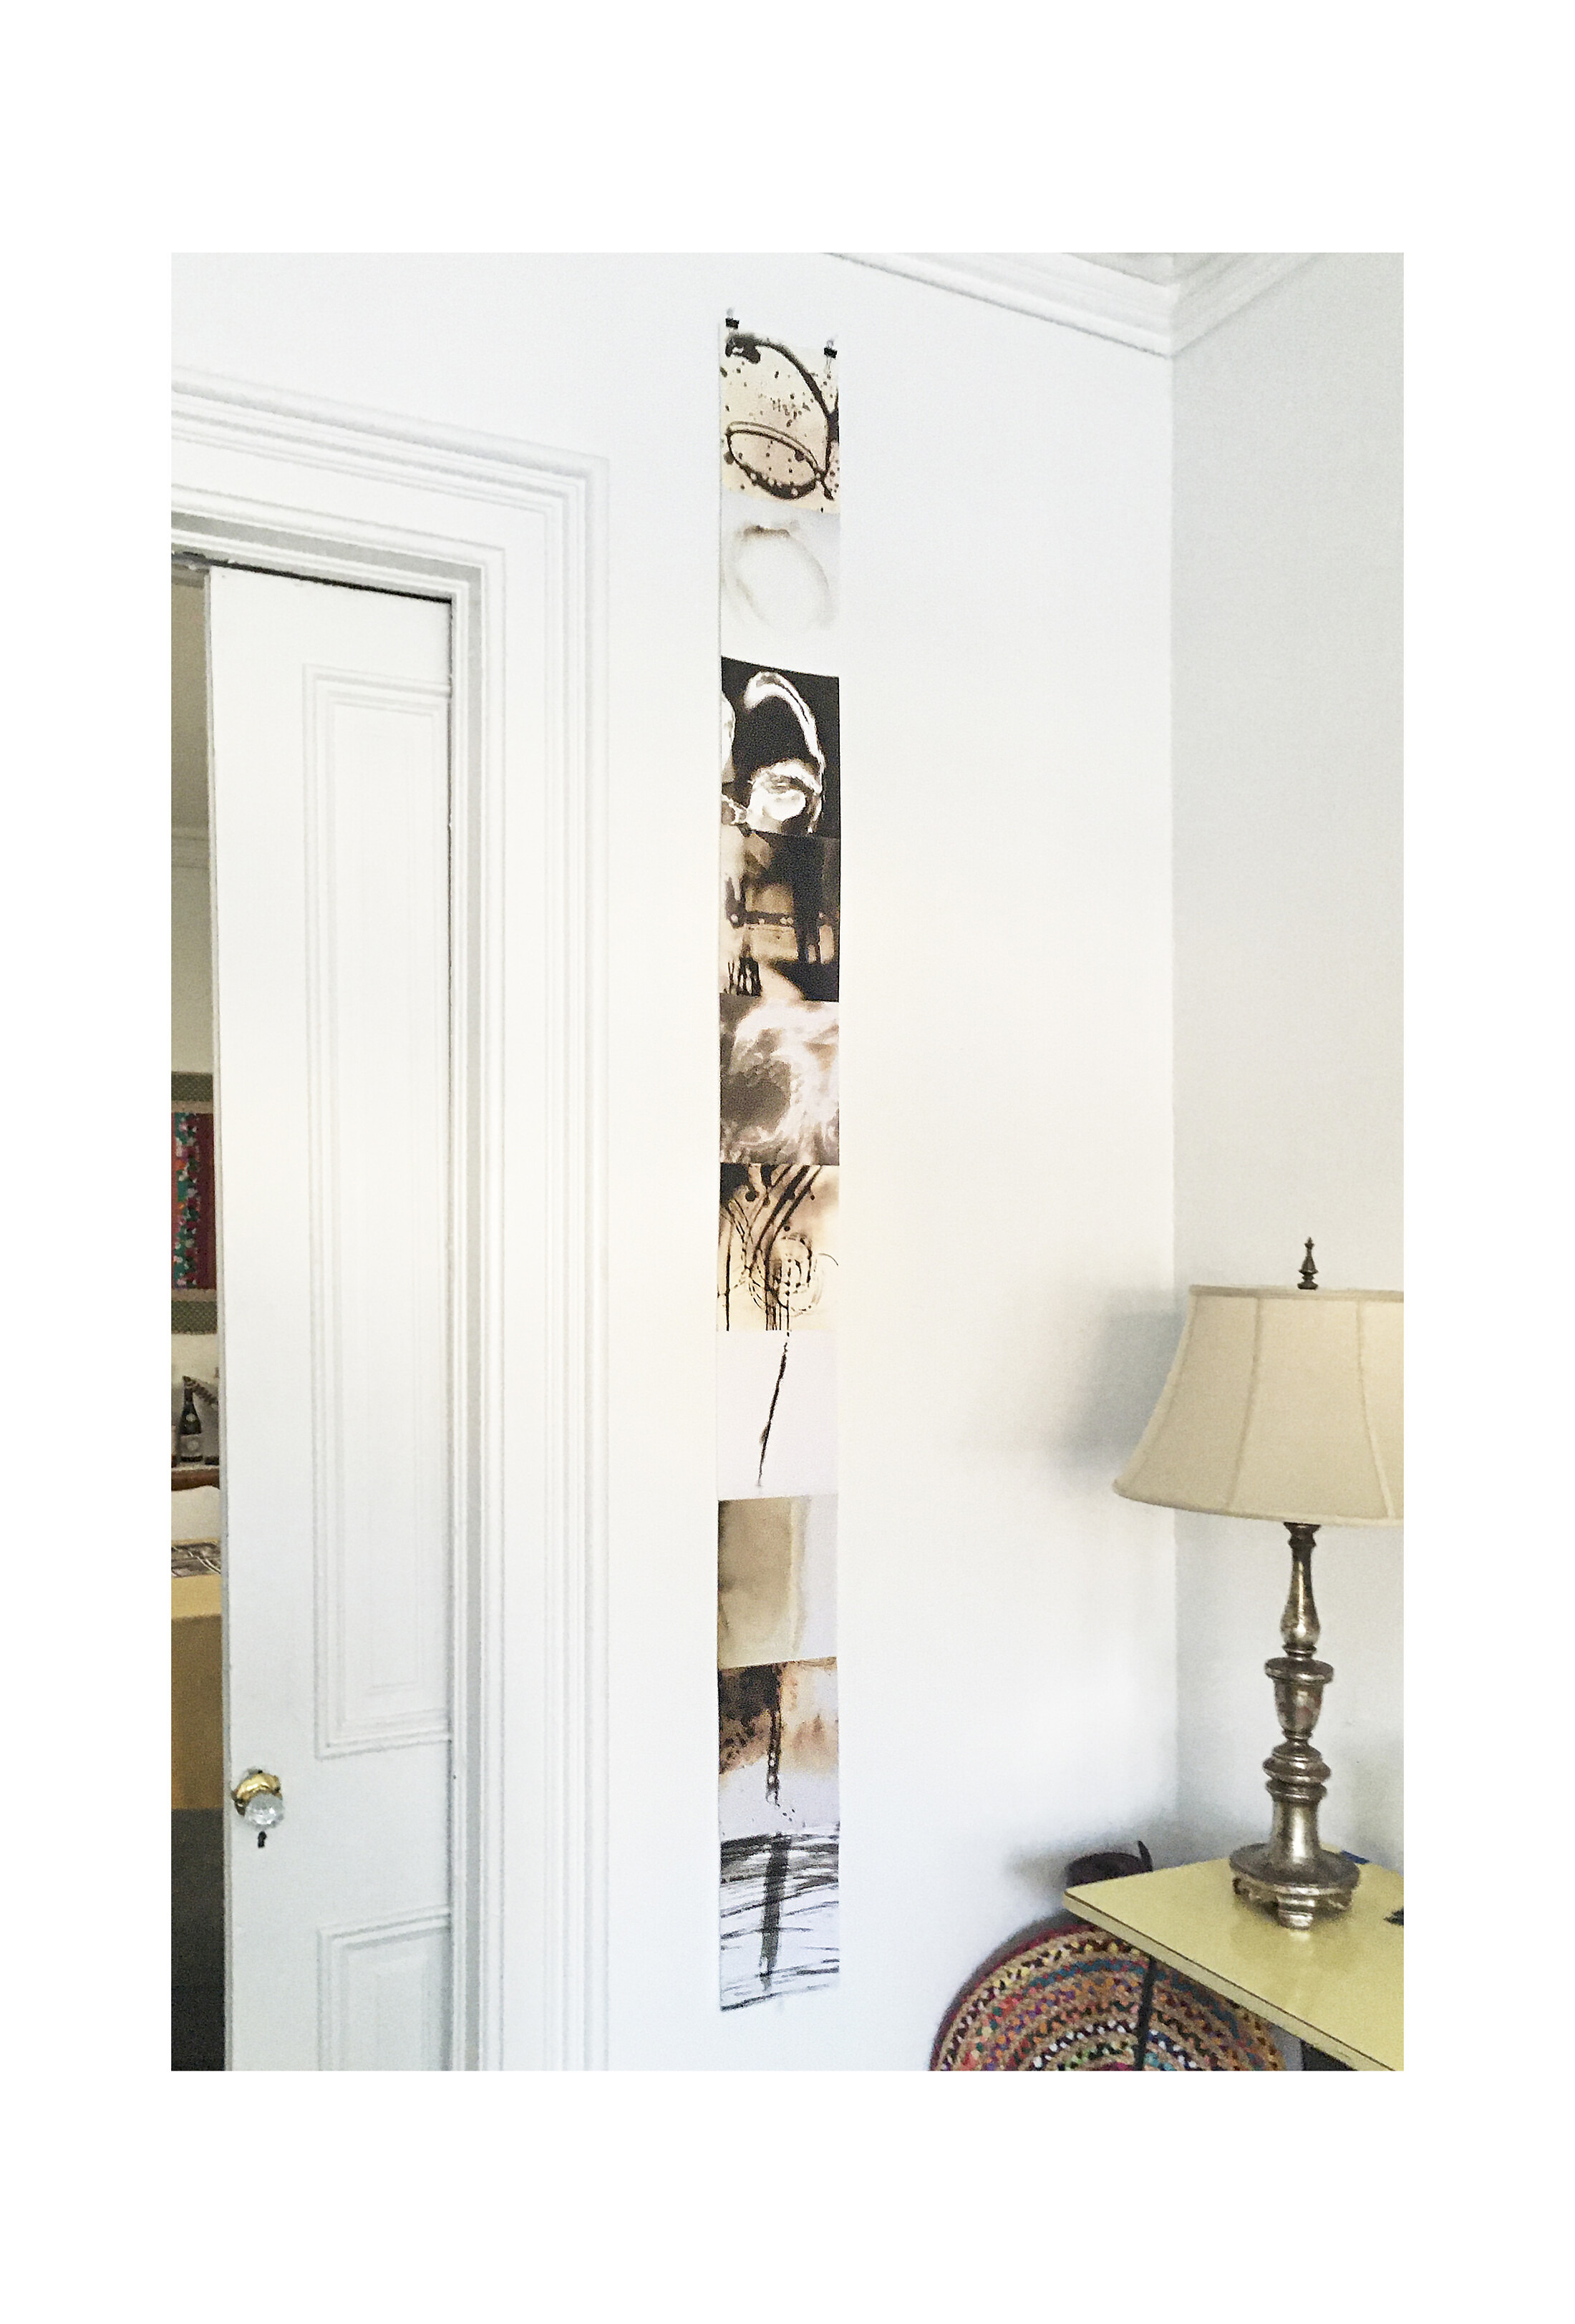 202-456-1111, wall-mounted, Chicago, IL